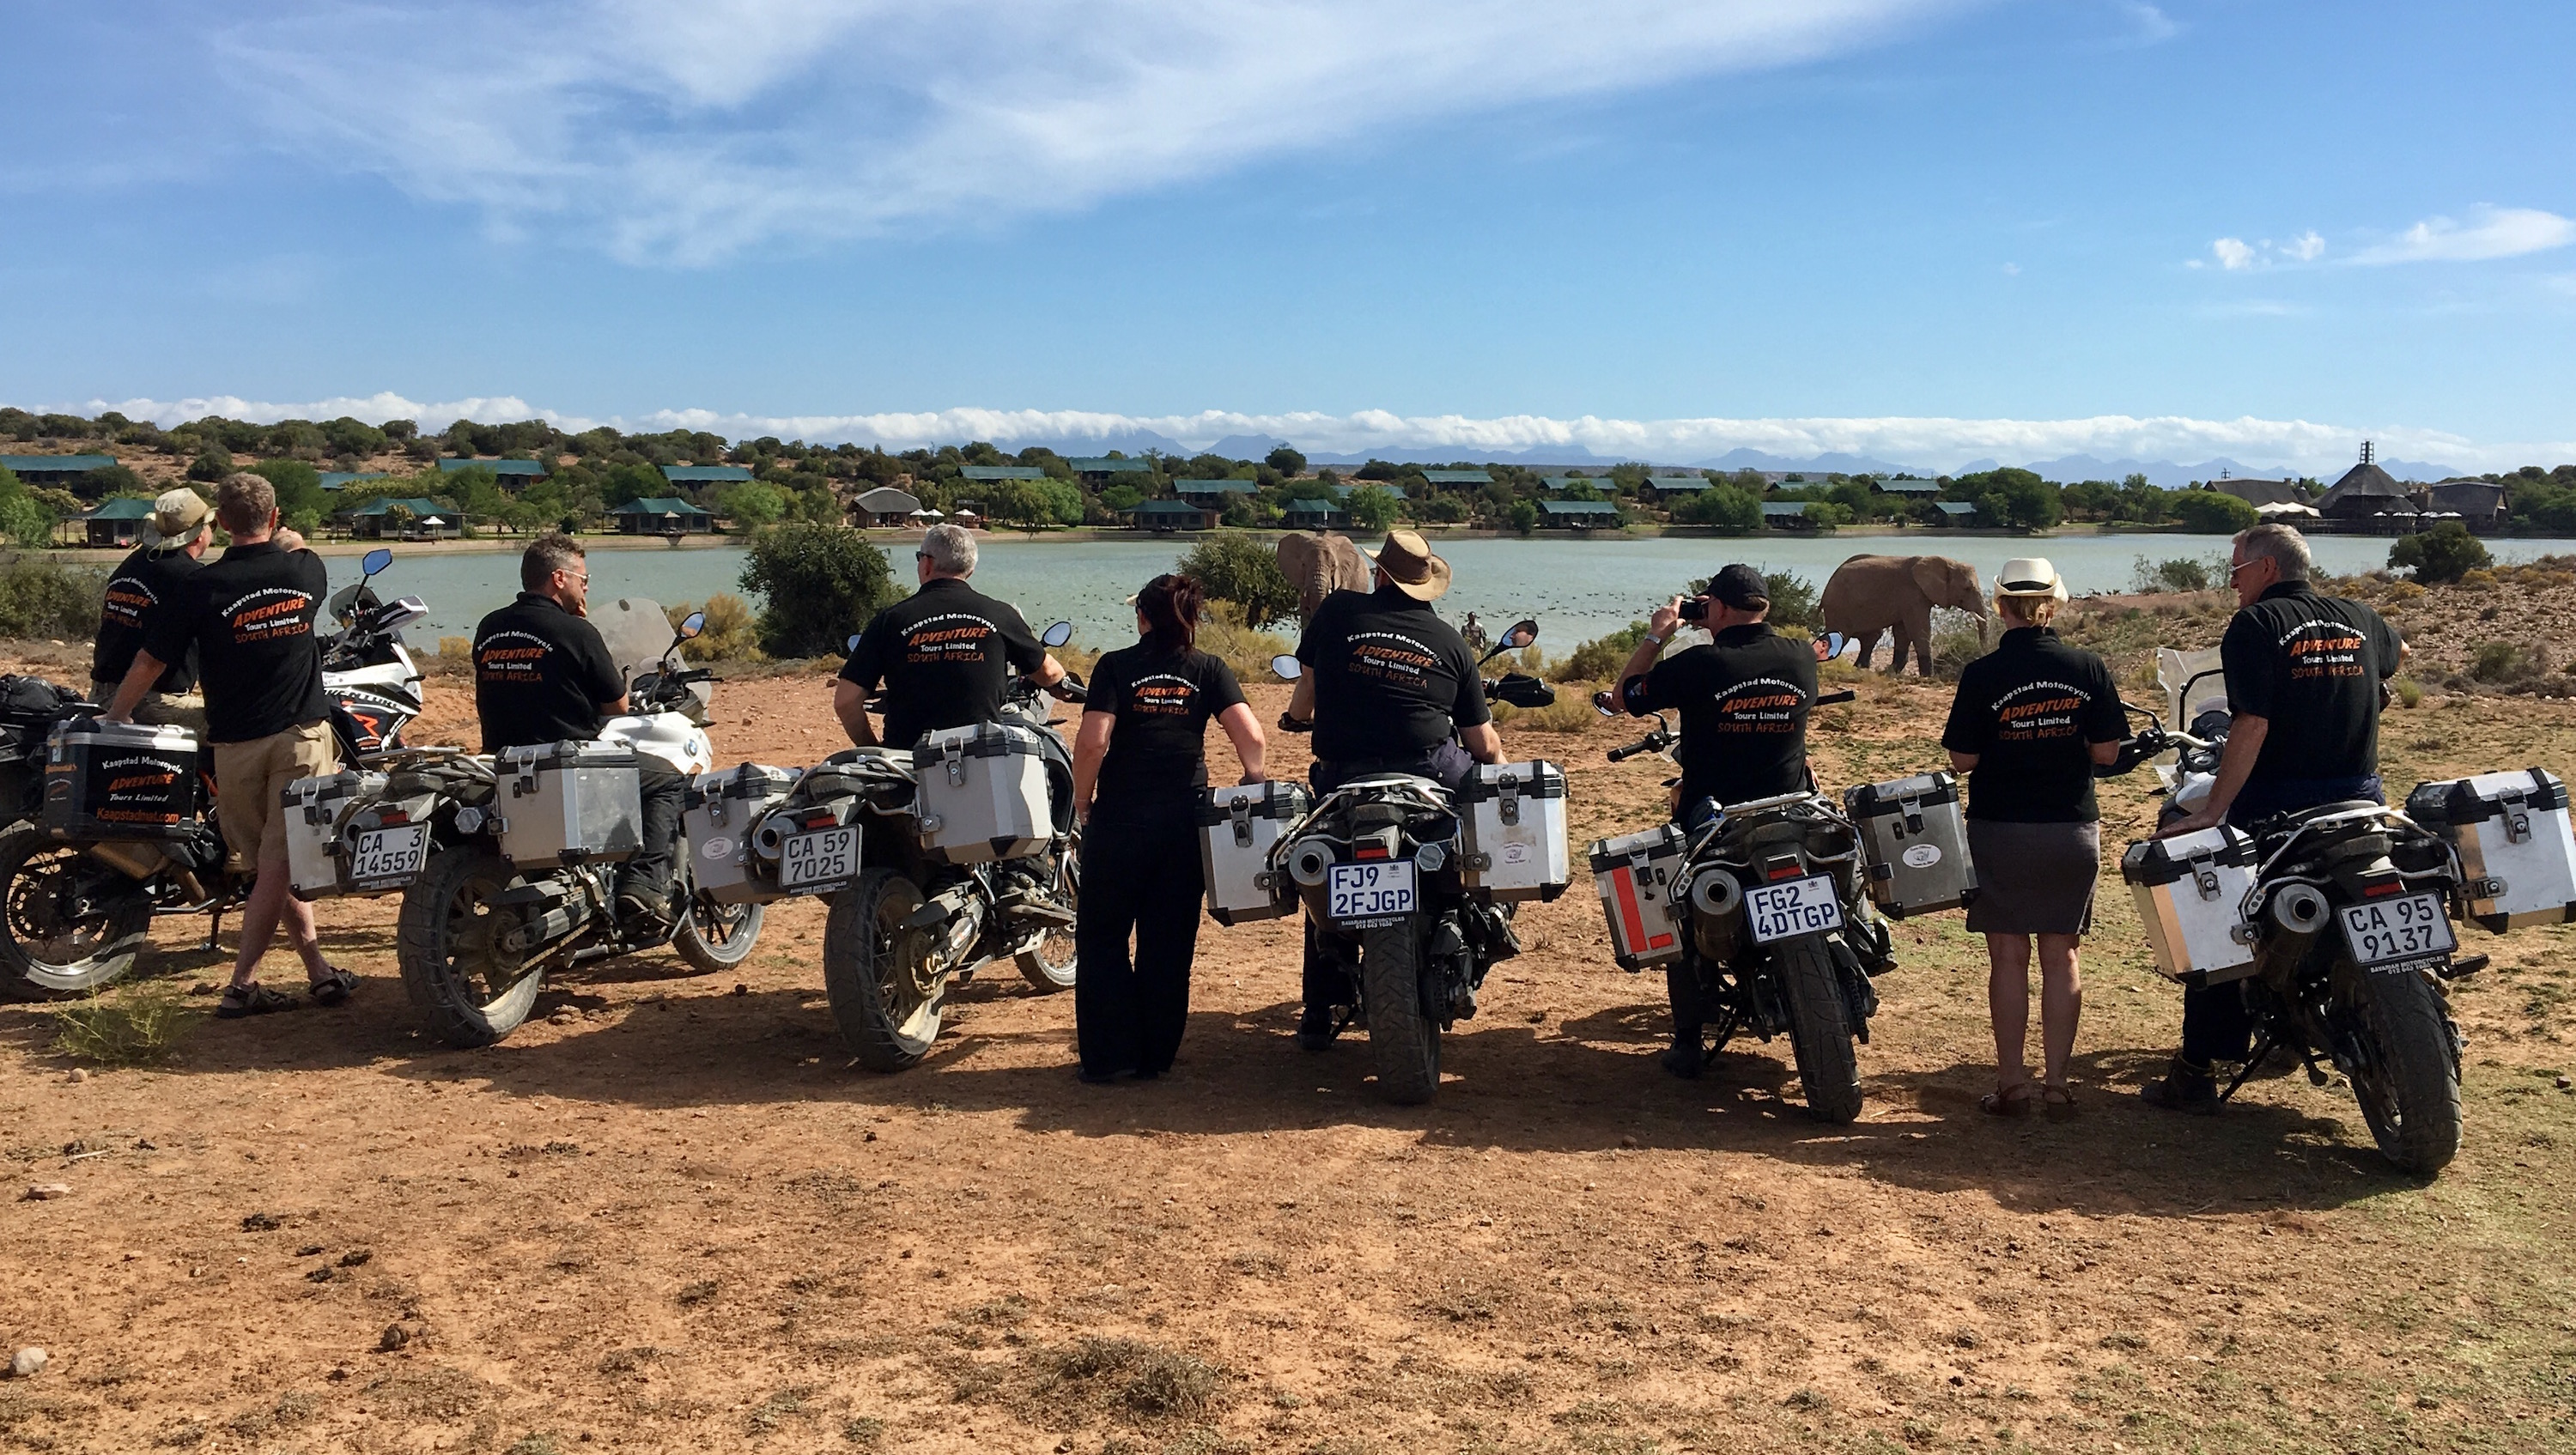 Gary Dipple rides – The Garden Route